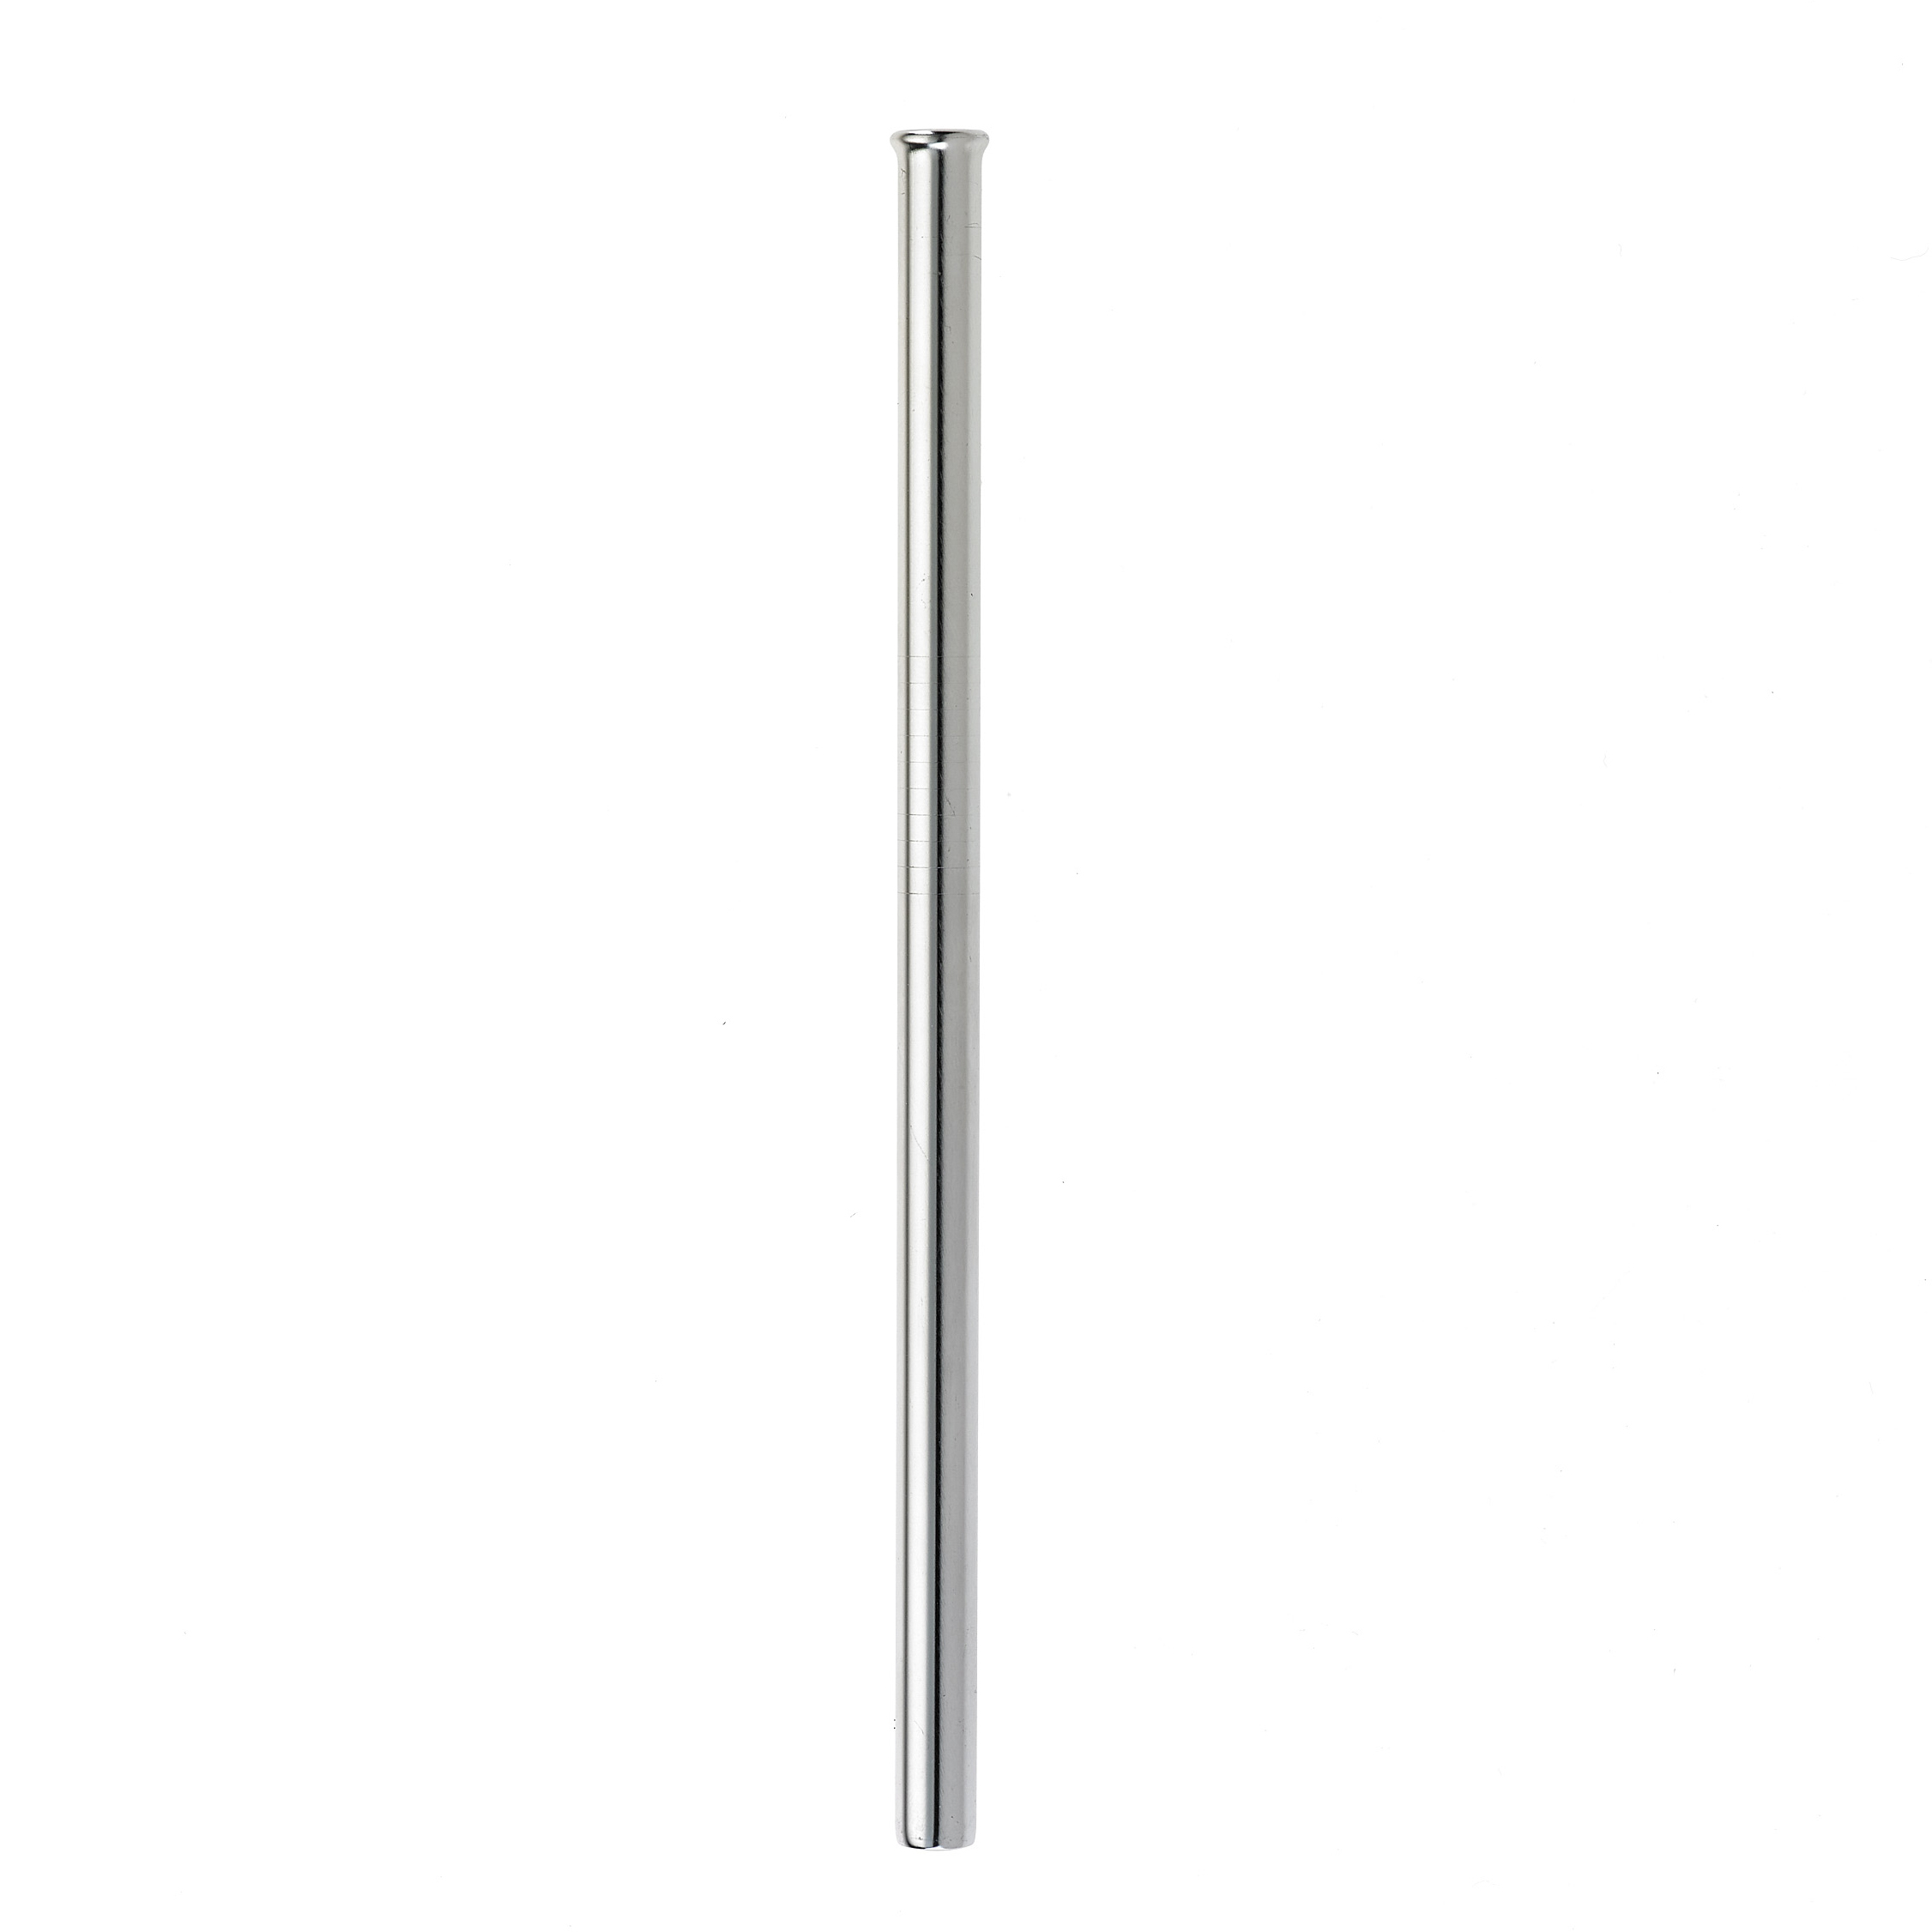 Mercer Culinary M37116 straws